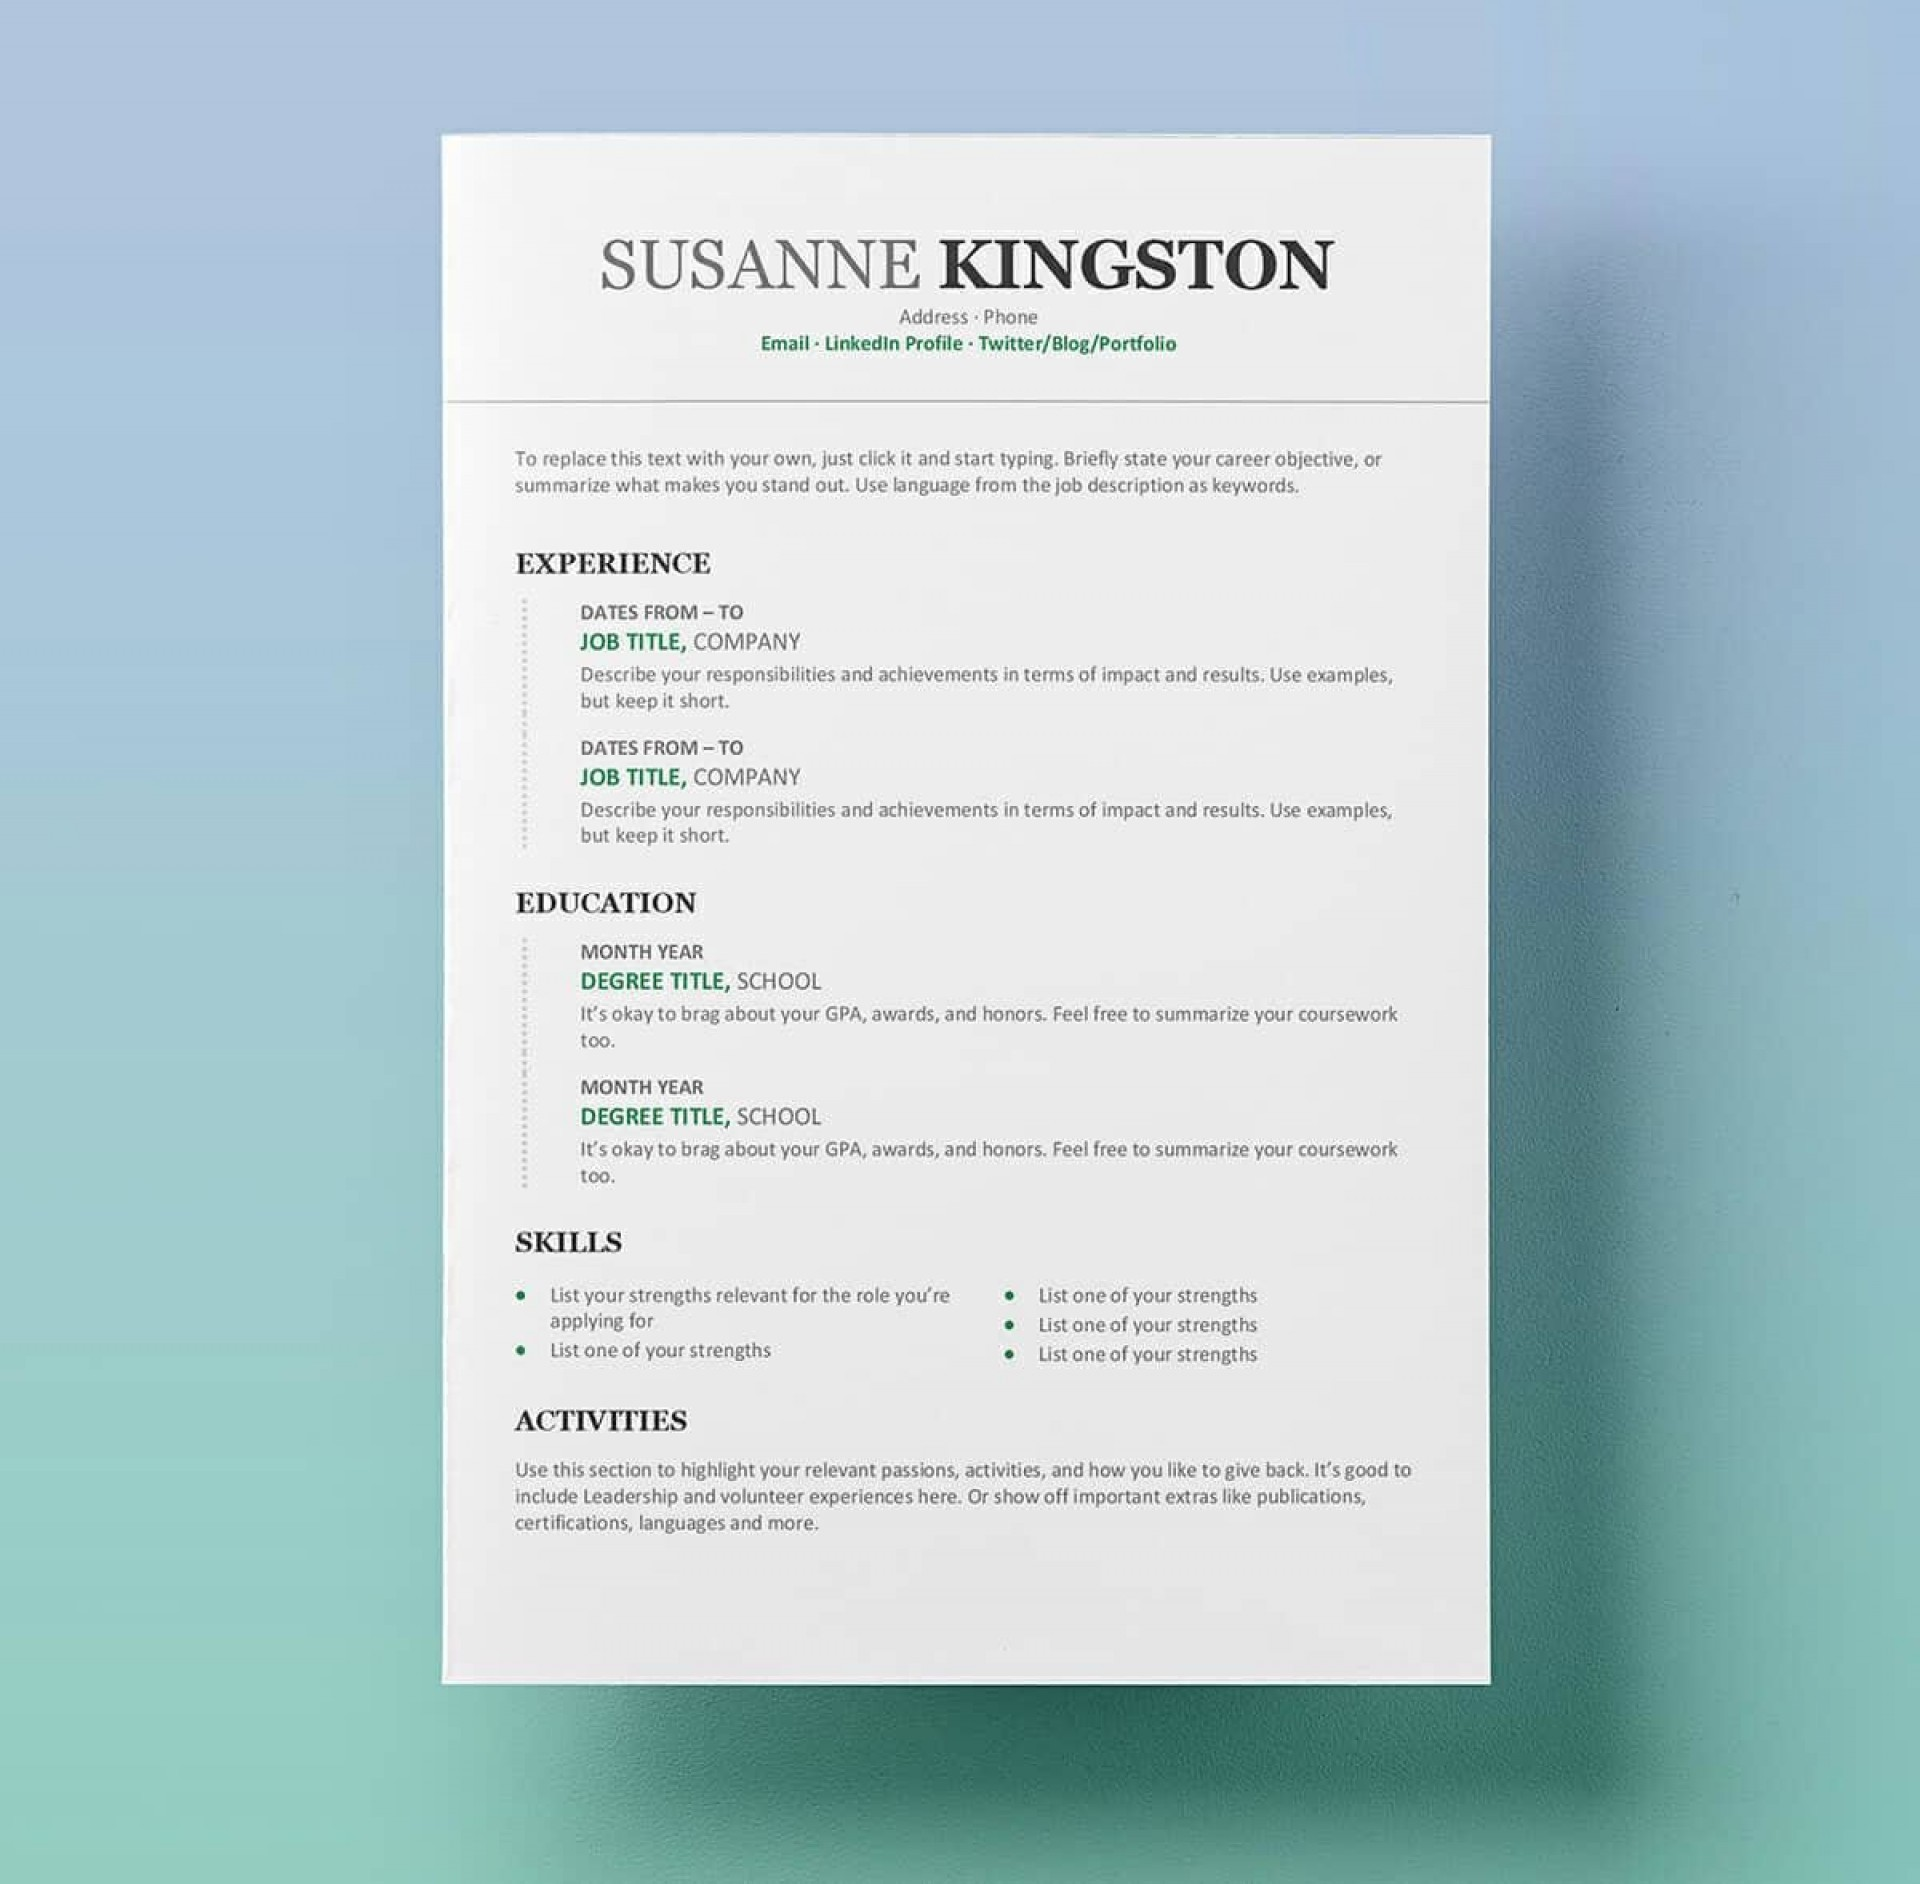 004 Unique Professional Resume Template Word Picture  Microsoft Download Free 2010 20191920